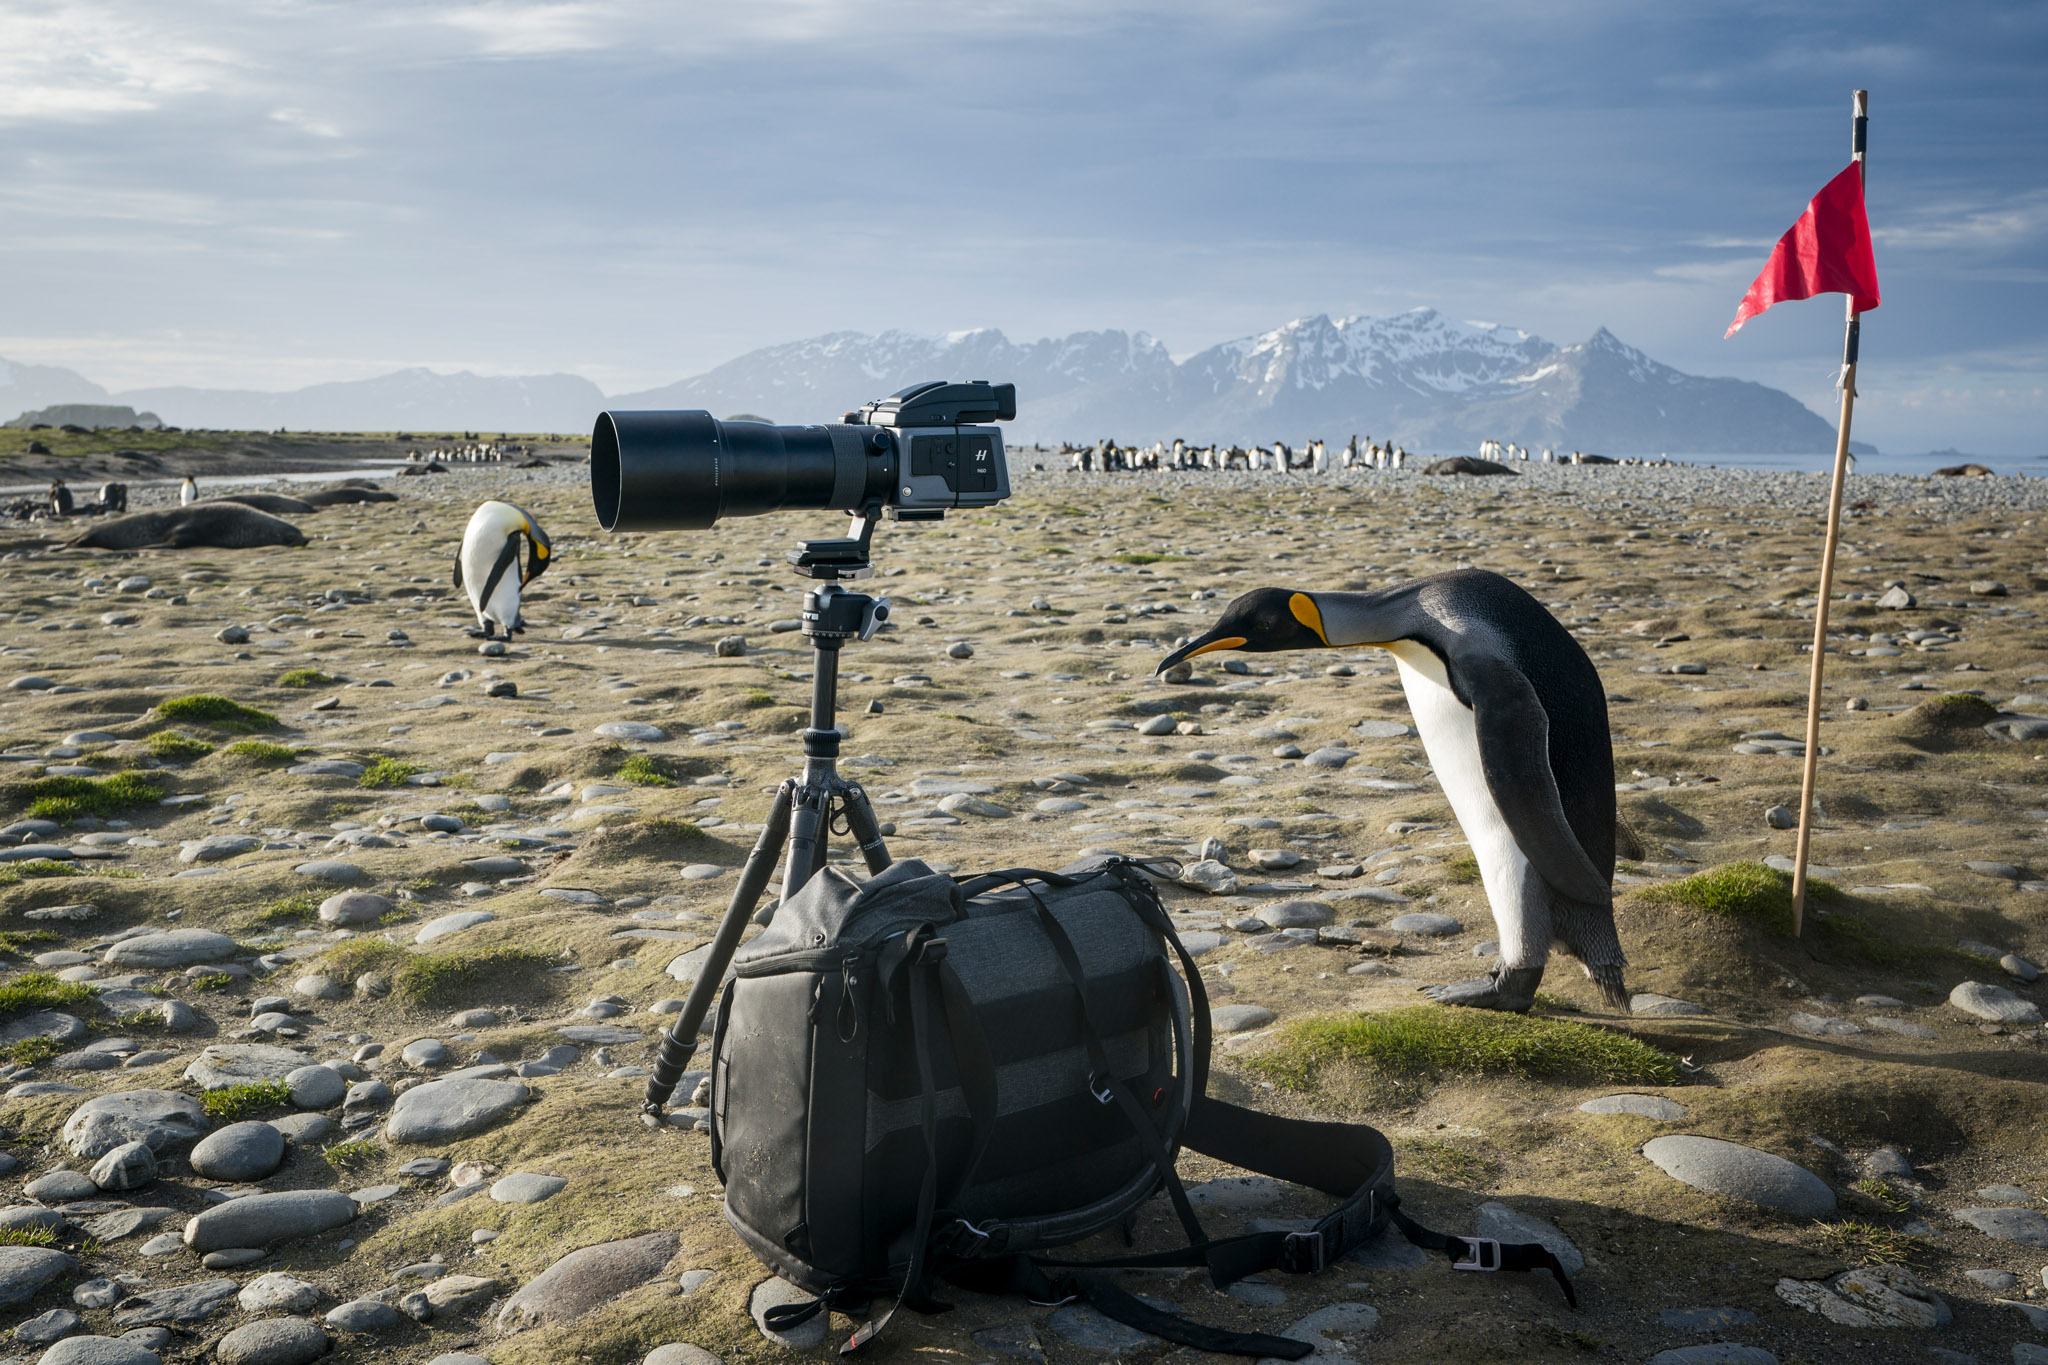 Hasselblad H6D-100c and Peak Design Everyday Backpack 30L.